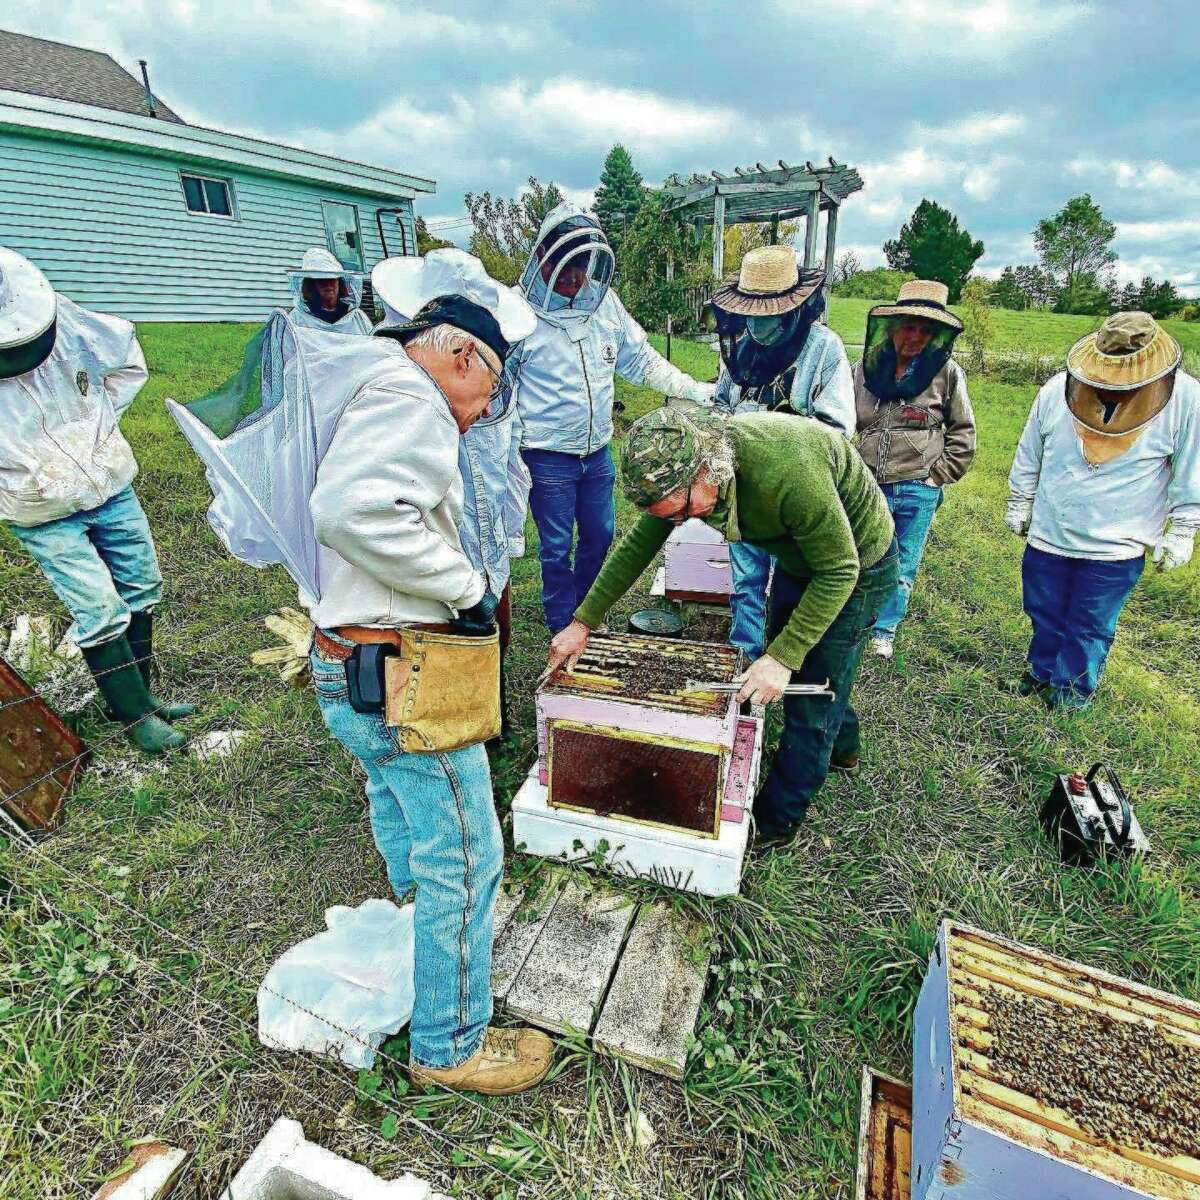 TheBenzie Area Beekeepers Guild meets at Grow Benzie, just one of the many organizations who use the facility for meetings and activities. (Courtesy photo)